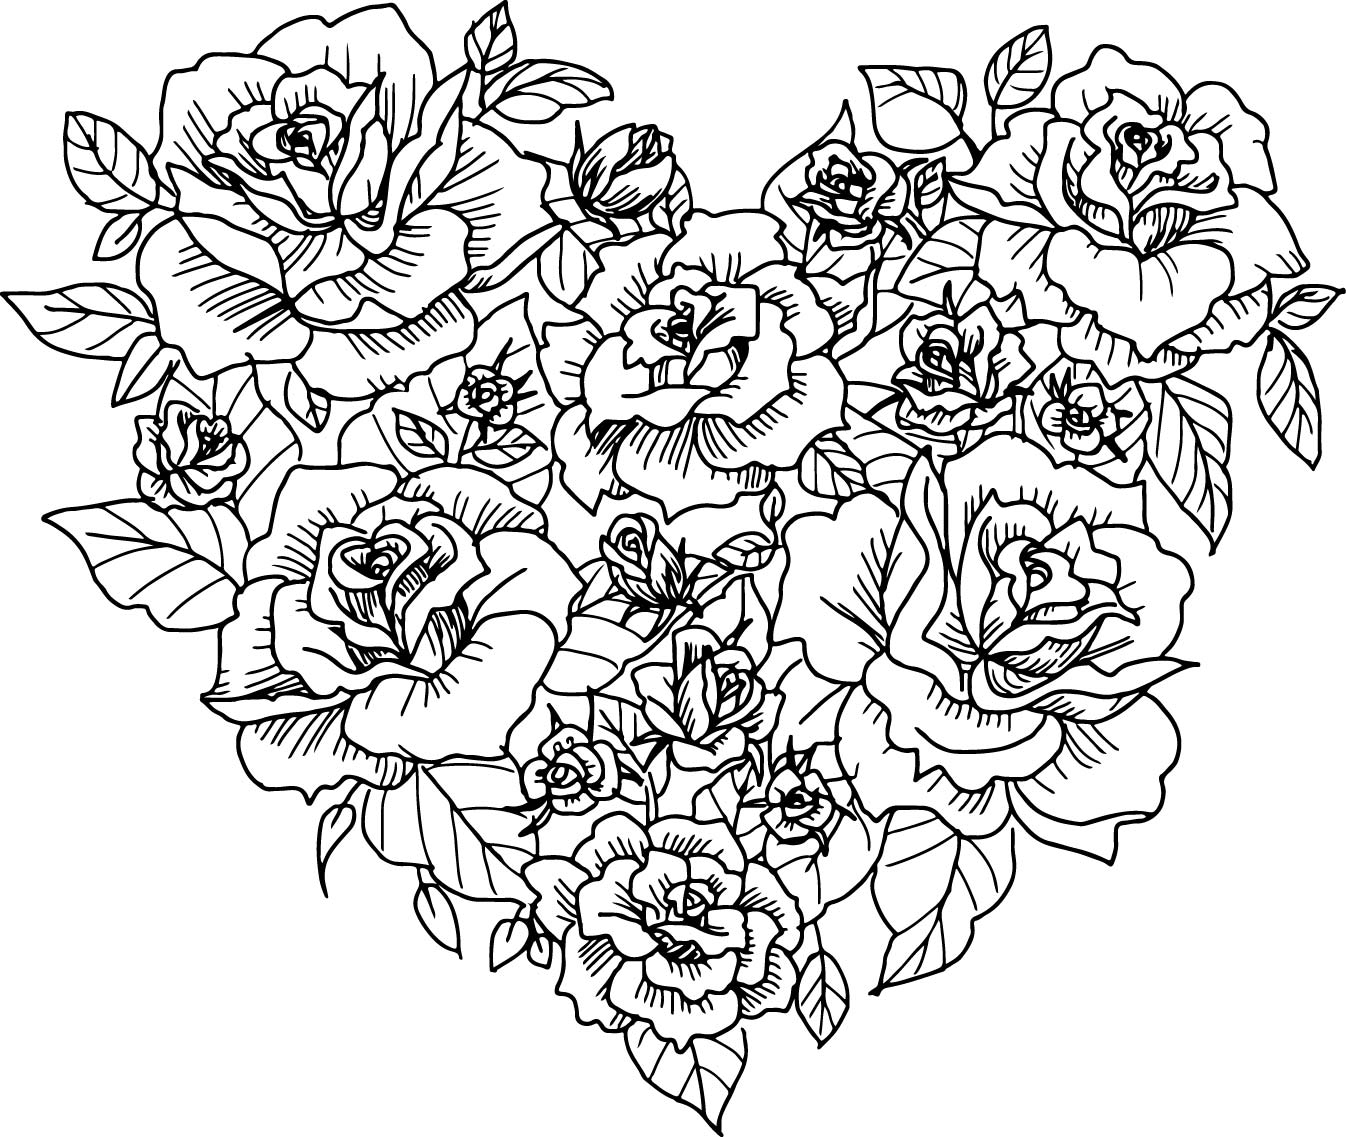 a coloring page of a rose printable rose coloring pages for kids a of rose a page coloring